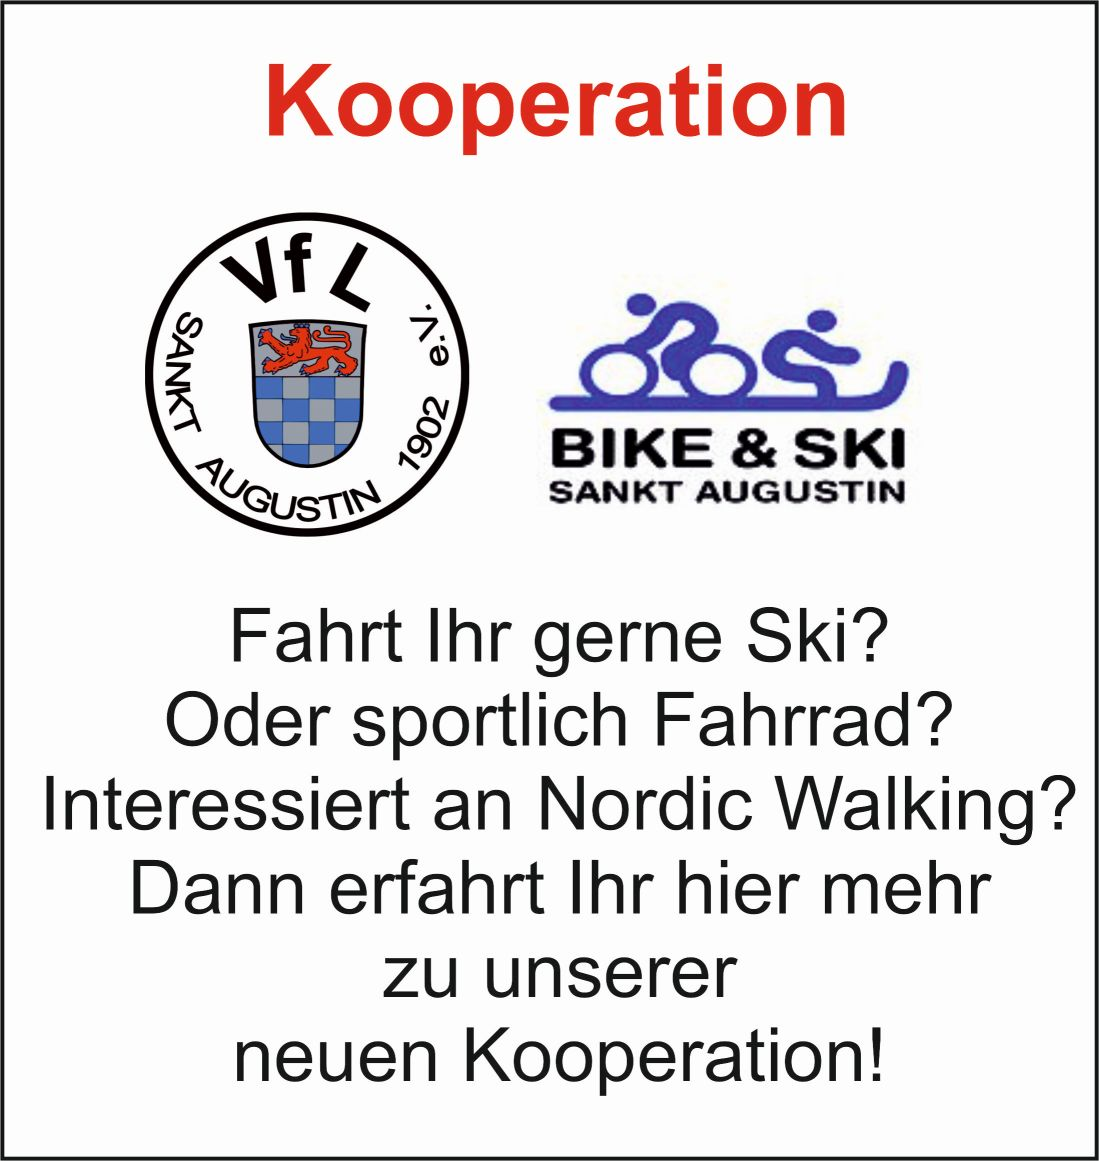 Kooperation mit Bike + Ski